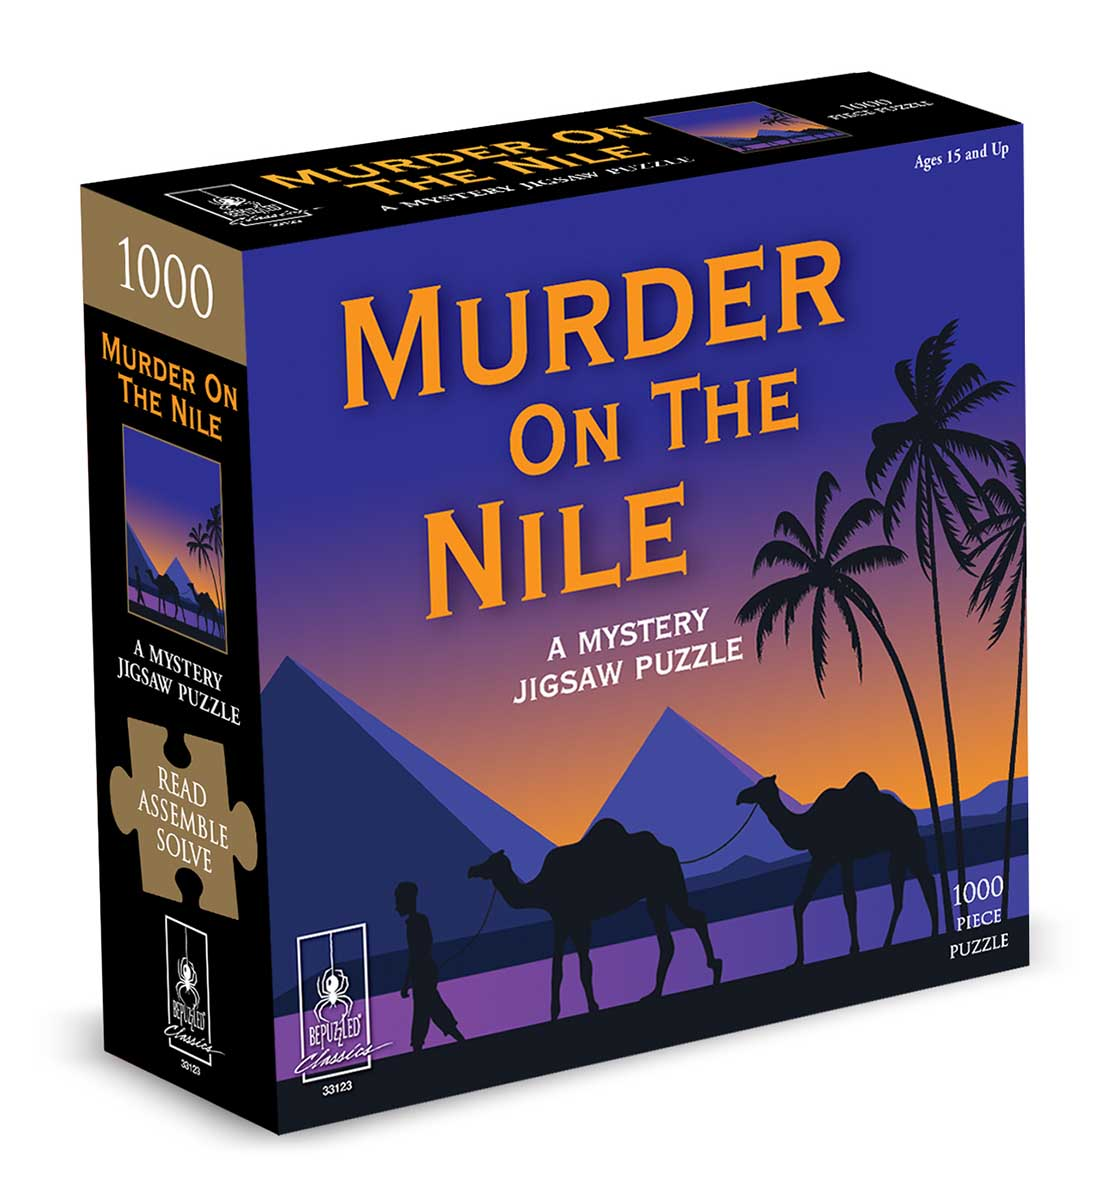 Murder On the Nile Murder Mystery Jigsaw Puzzle